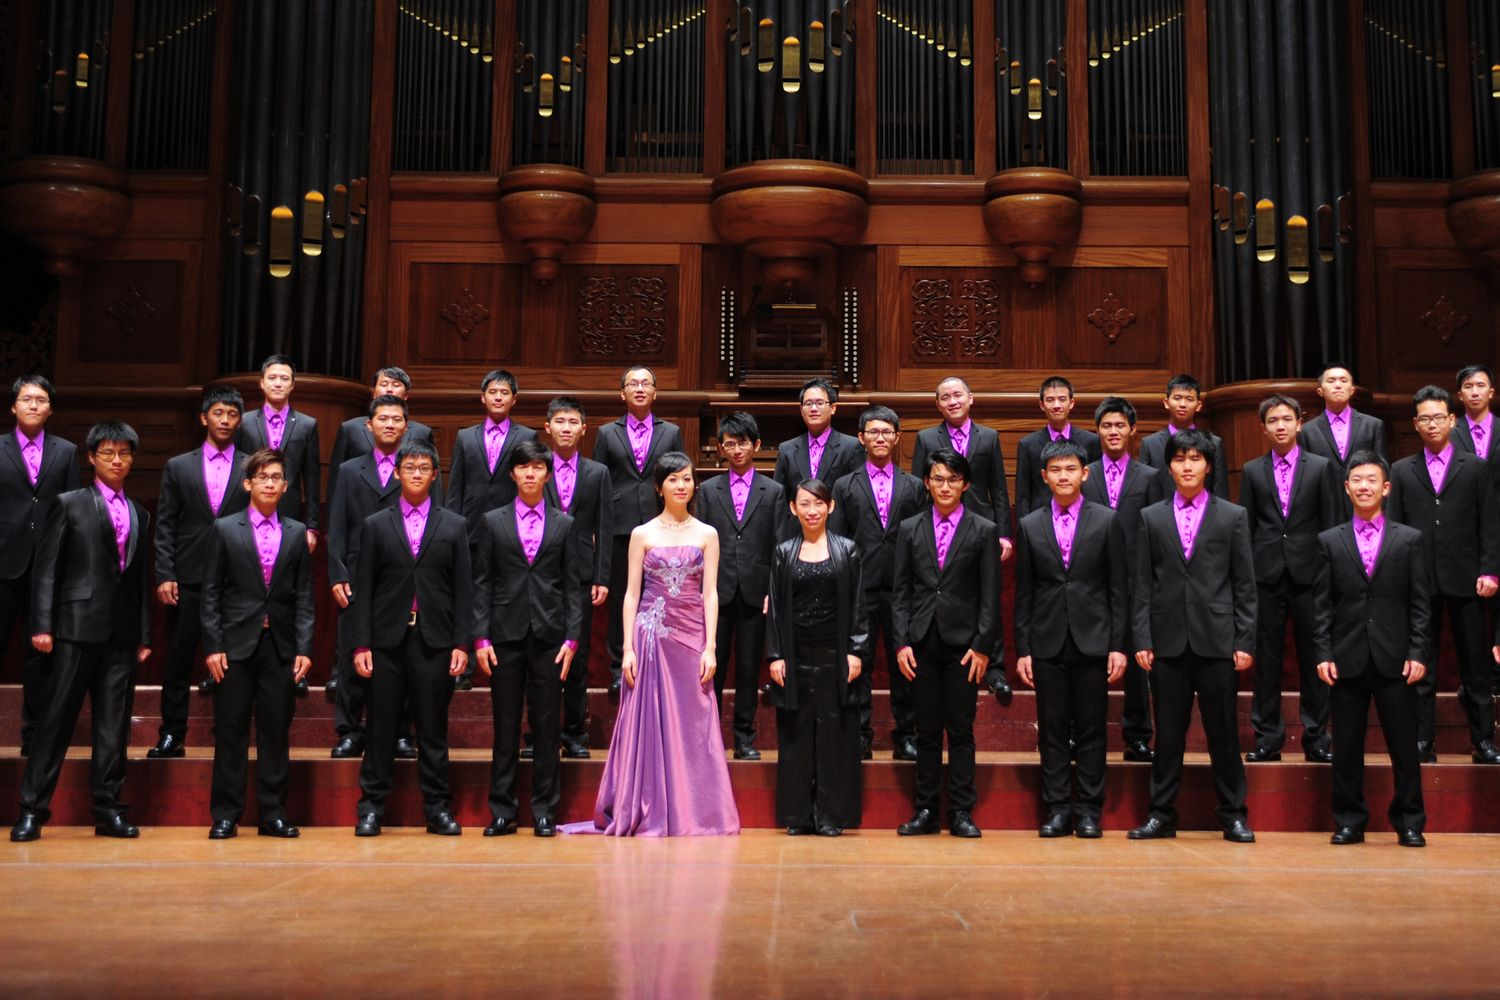 Winner of Johannes Brahms Choir Prize: The Müller Chamber Choir (Chinese Taipei)